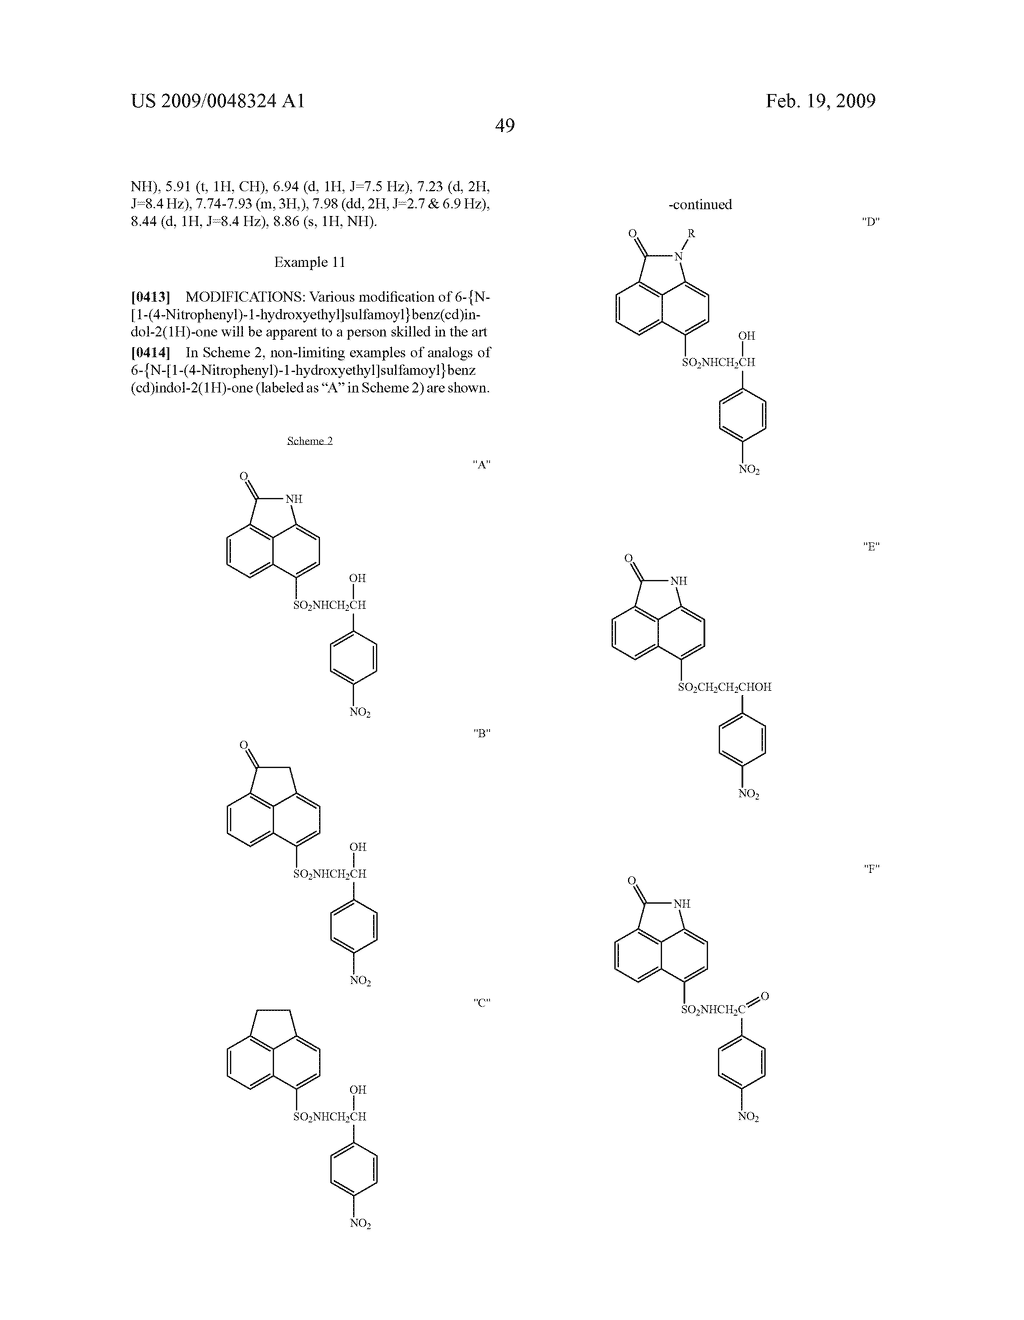 ALTERNATE MORPHEEIN FORMS OF ALLOSTERIC PROTEINS AS A TARGET FOR THE DEVELOPMENT OF BIOACTIVE MOLECULES - diagram, schematic, and image 104